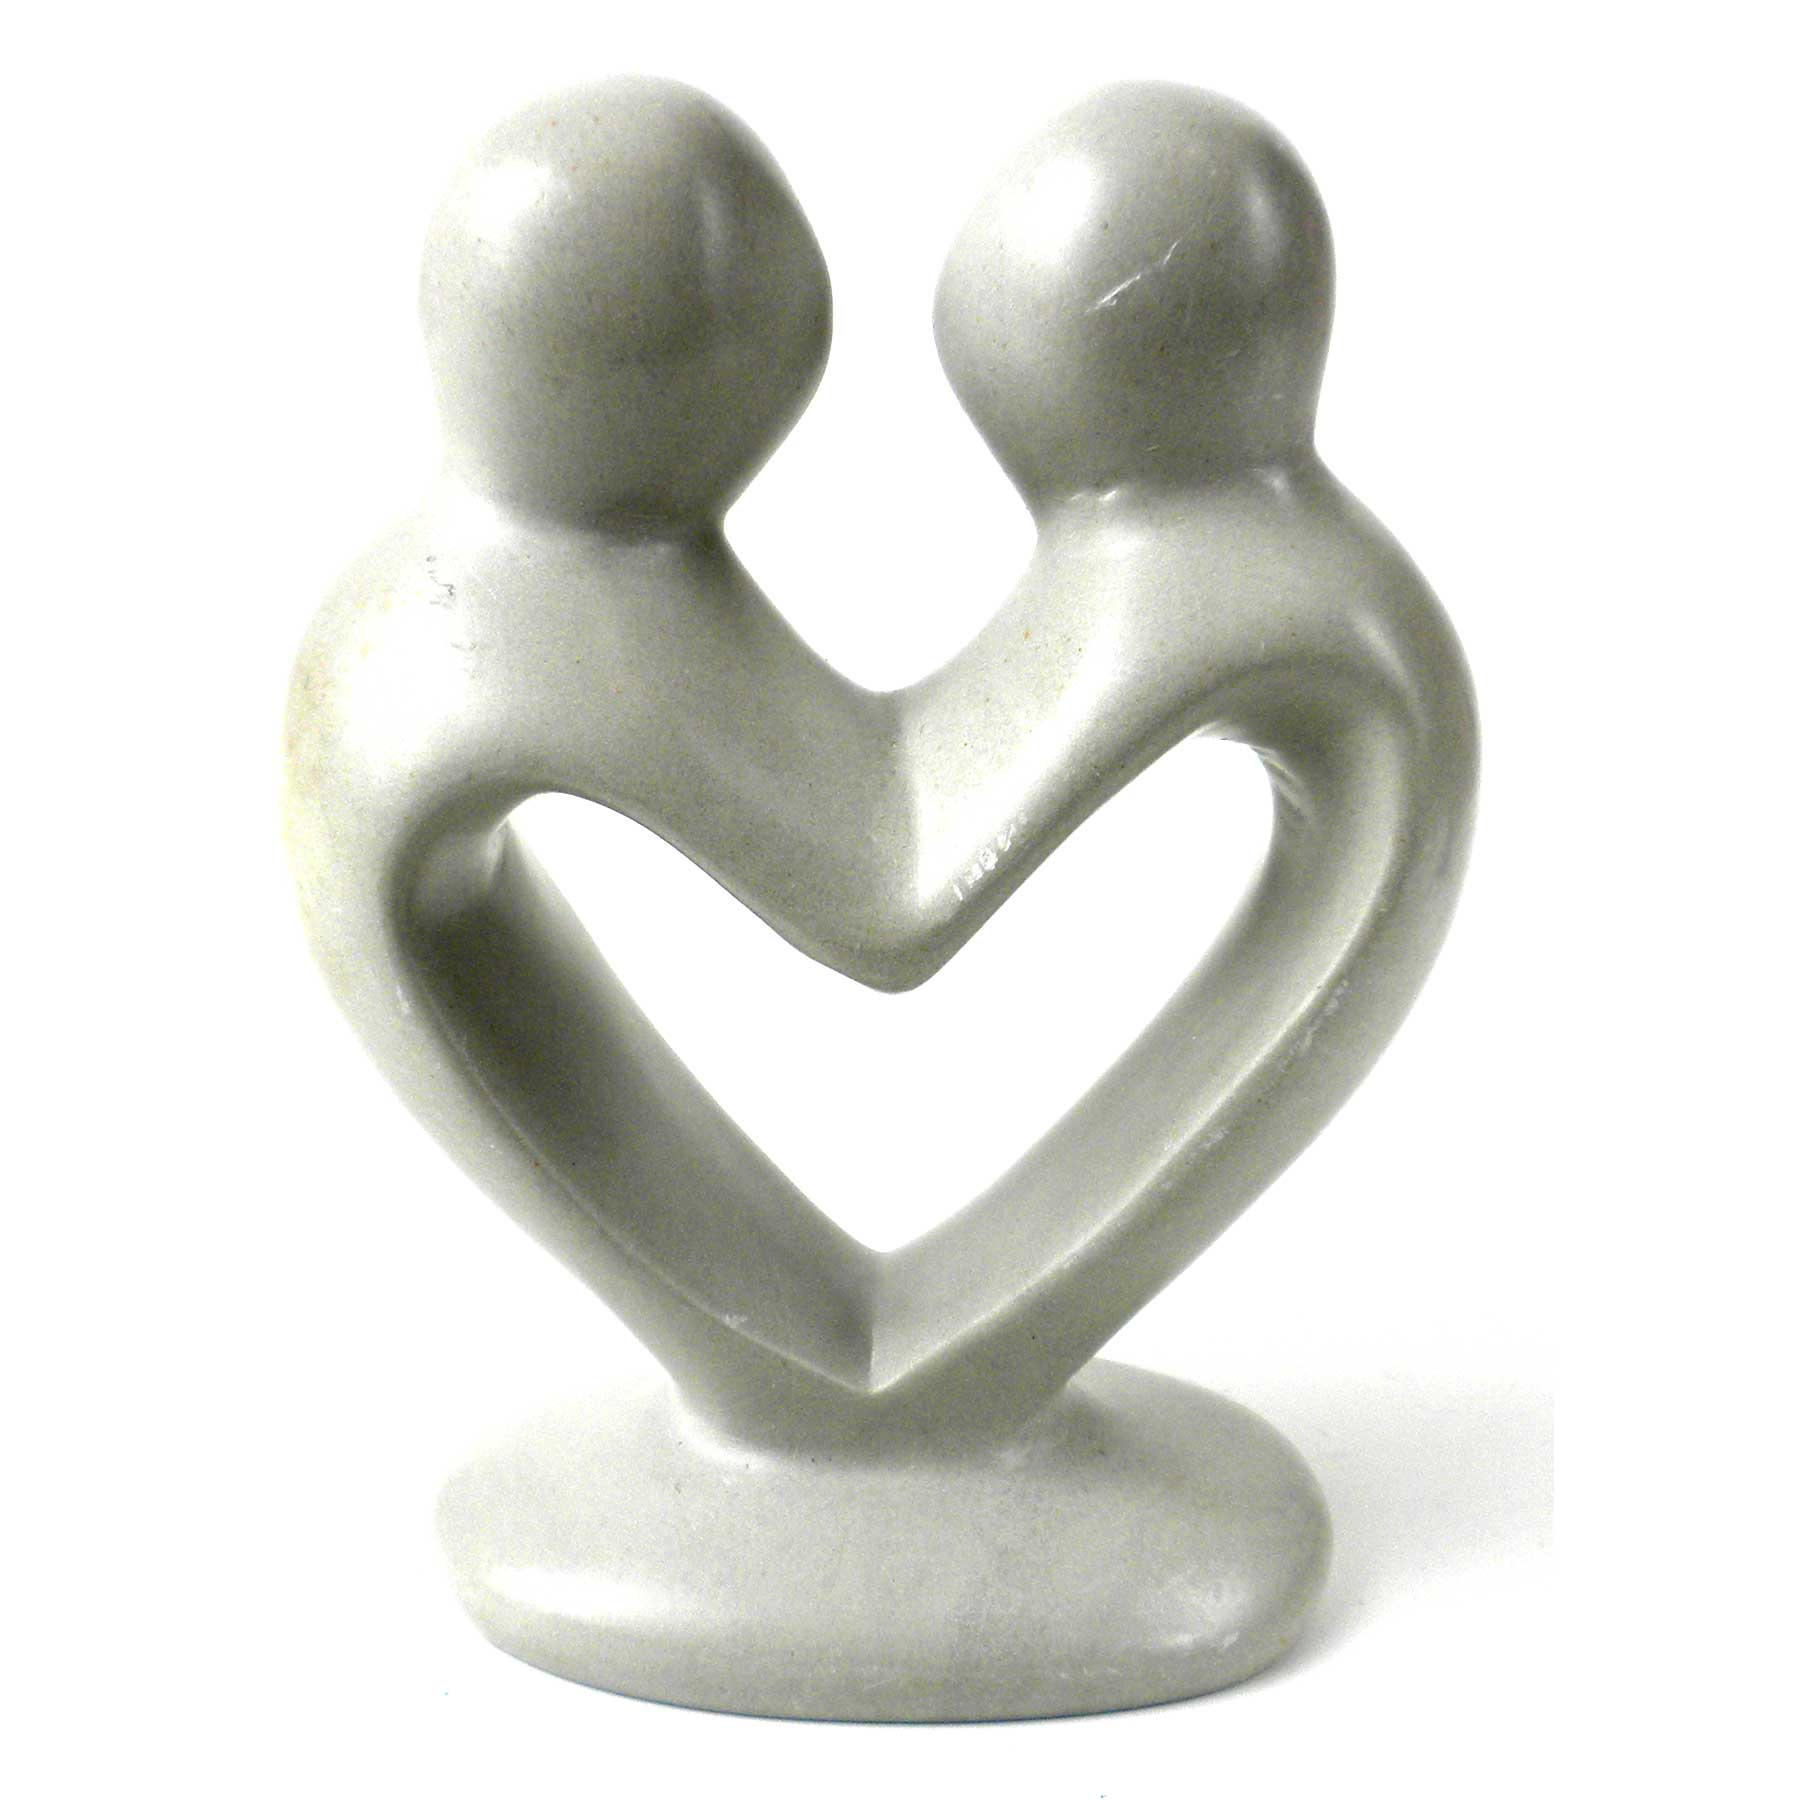 Soapstone Lovers Heart Natural - 4 Inch